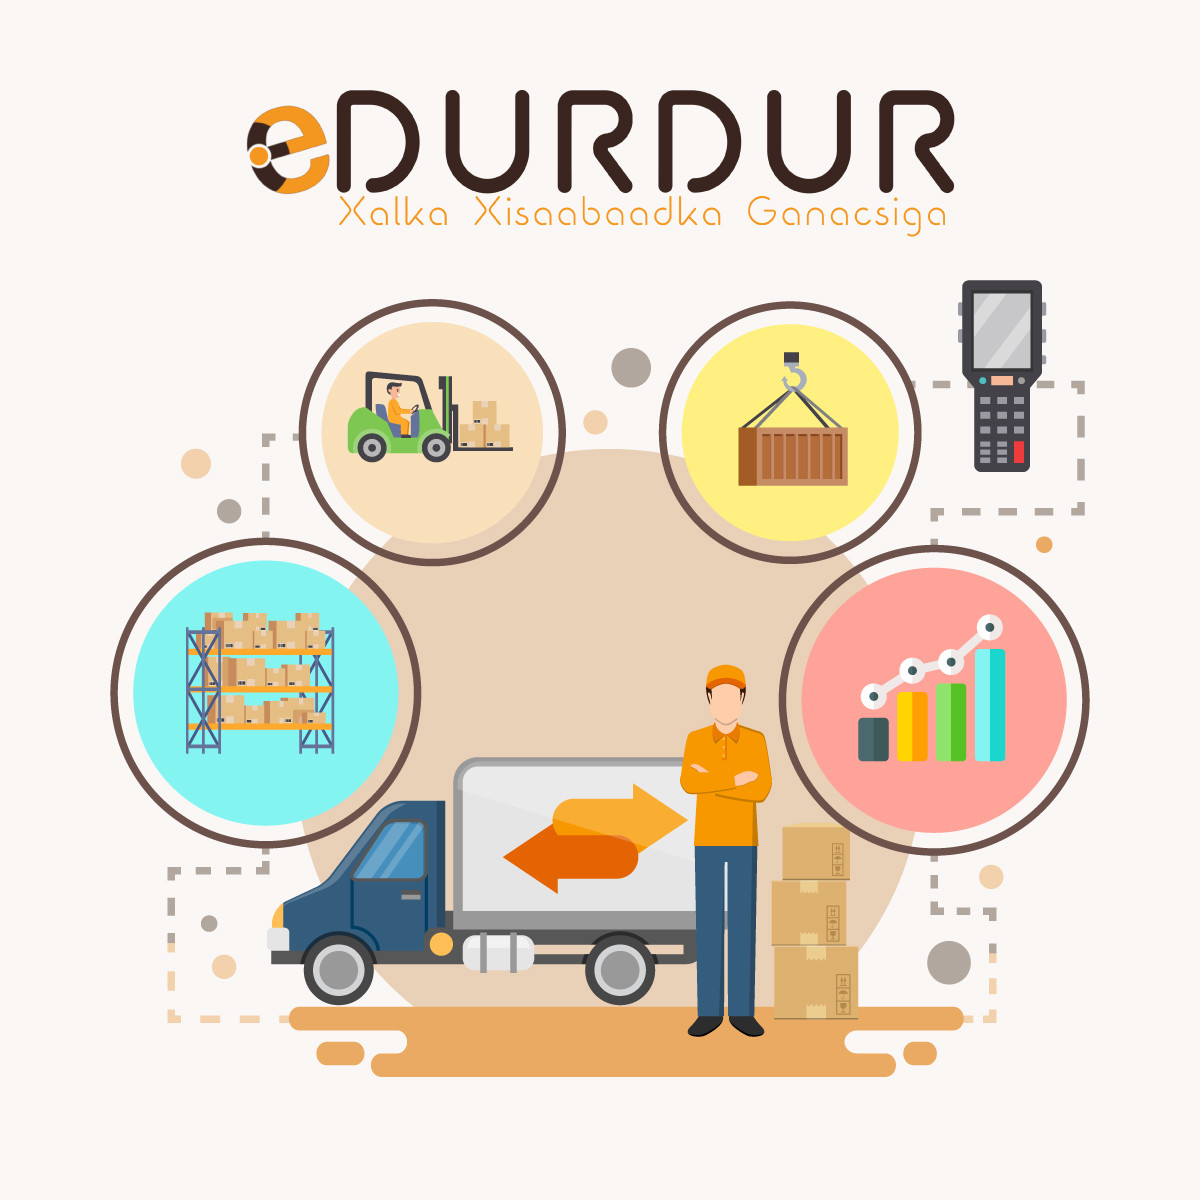 eDURDUR - Inventory Management System